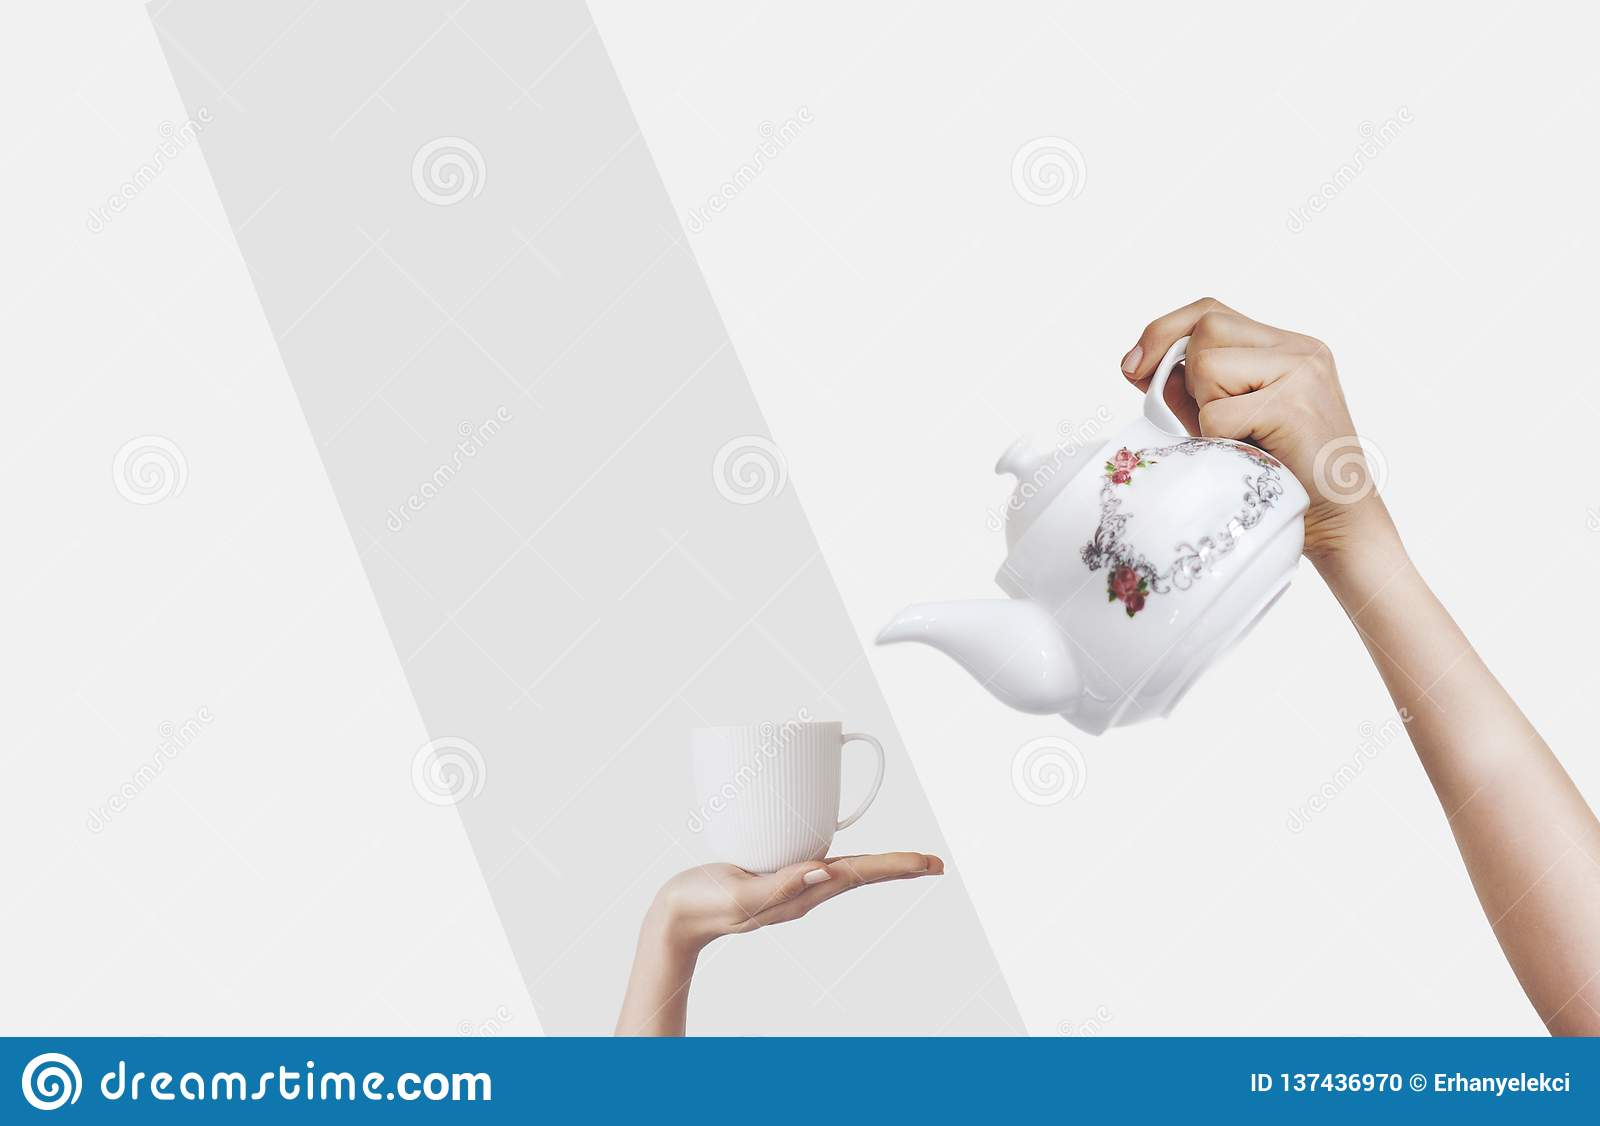 Hands holding kettle on isolated background and teacup